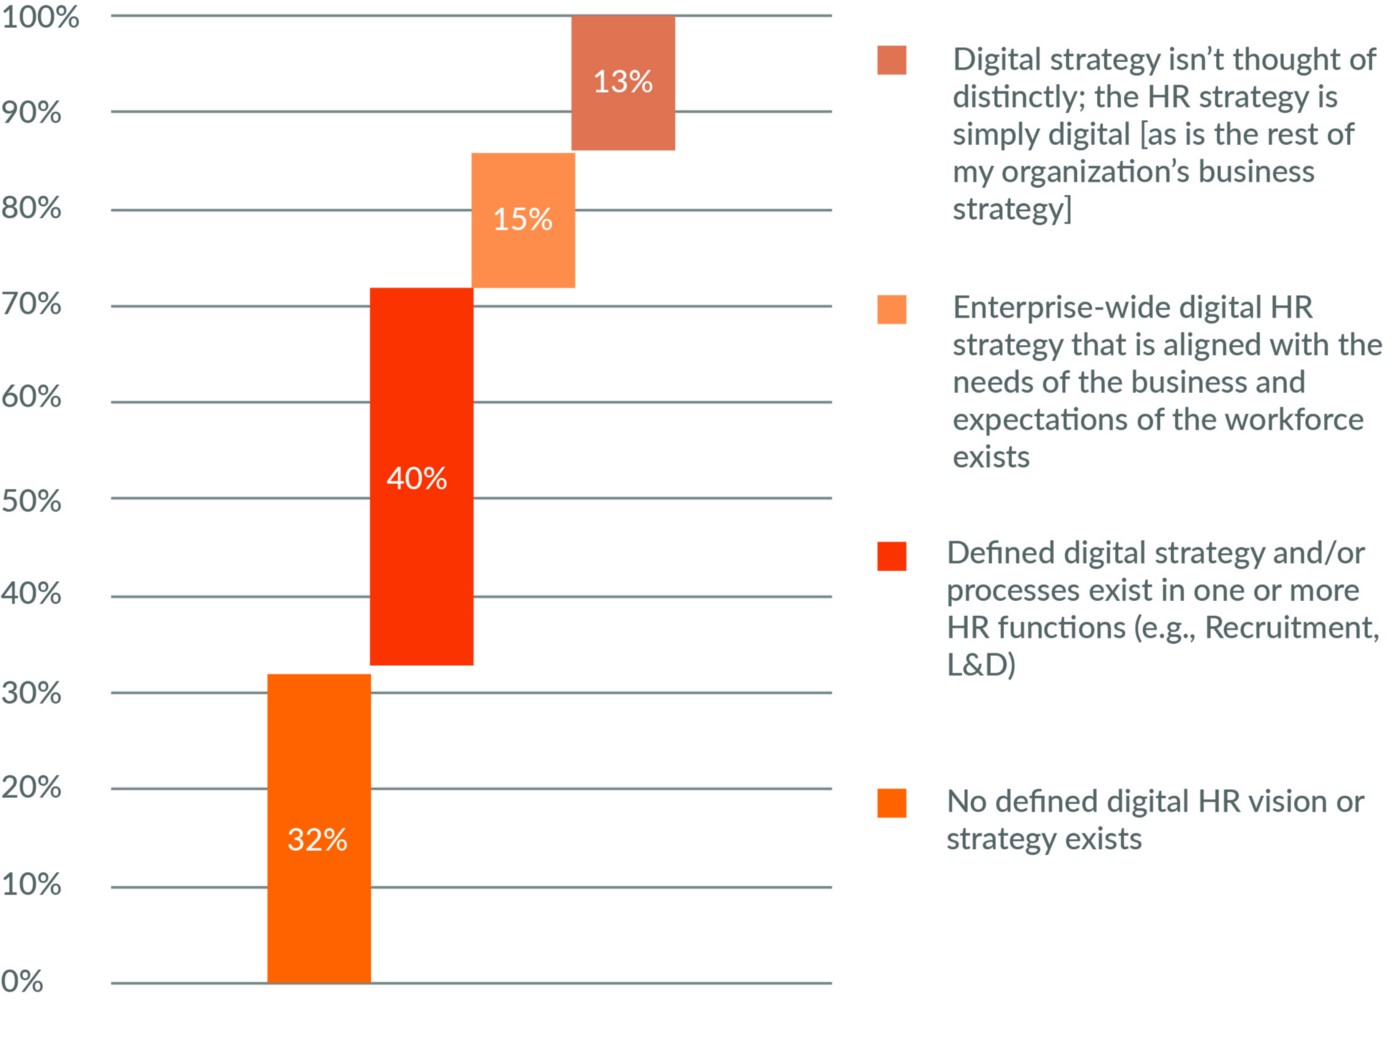 Figure 3: Leapgen and Unleash HR Innovation Survey Results on Digital HR Strategy